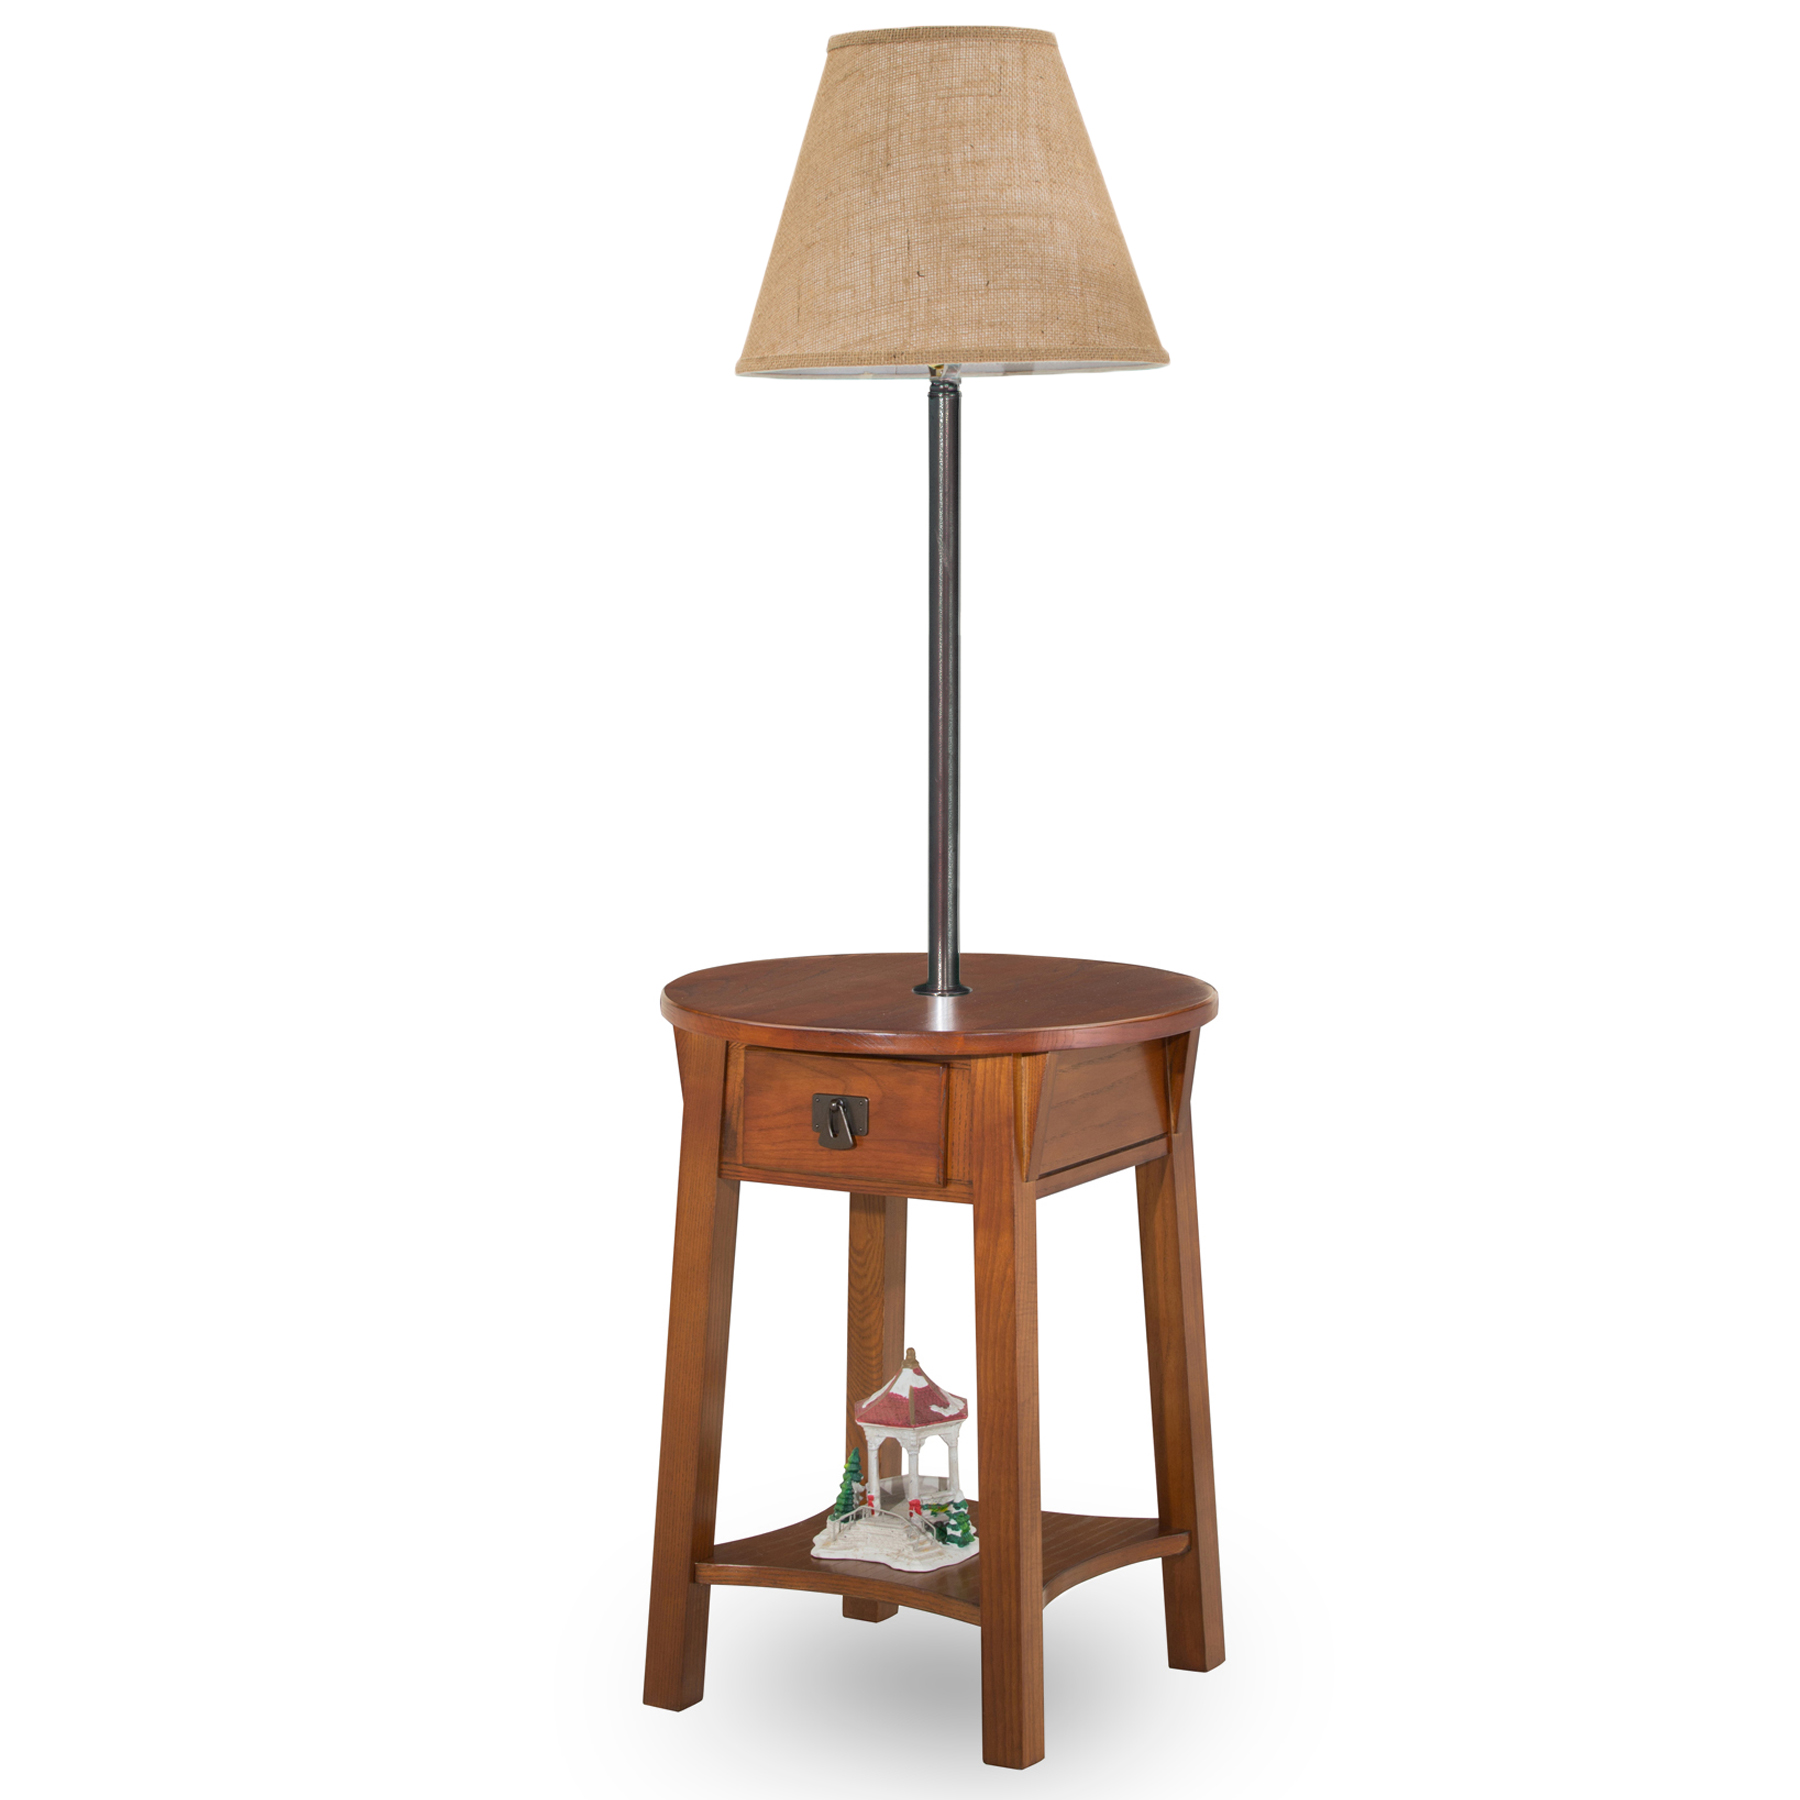 Real Wood Lamps Leick Chocolate Chairside Solid Wood Lamp Table Home